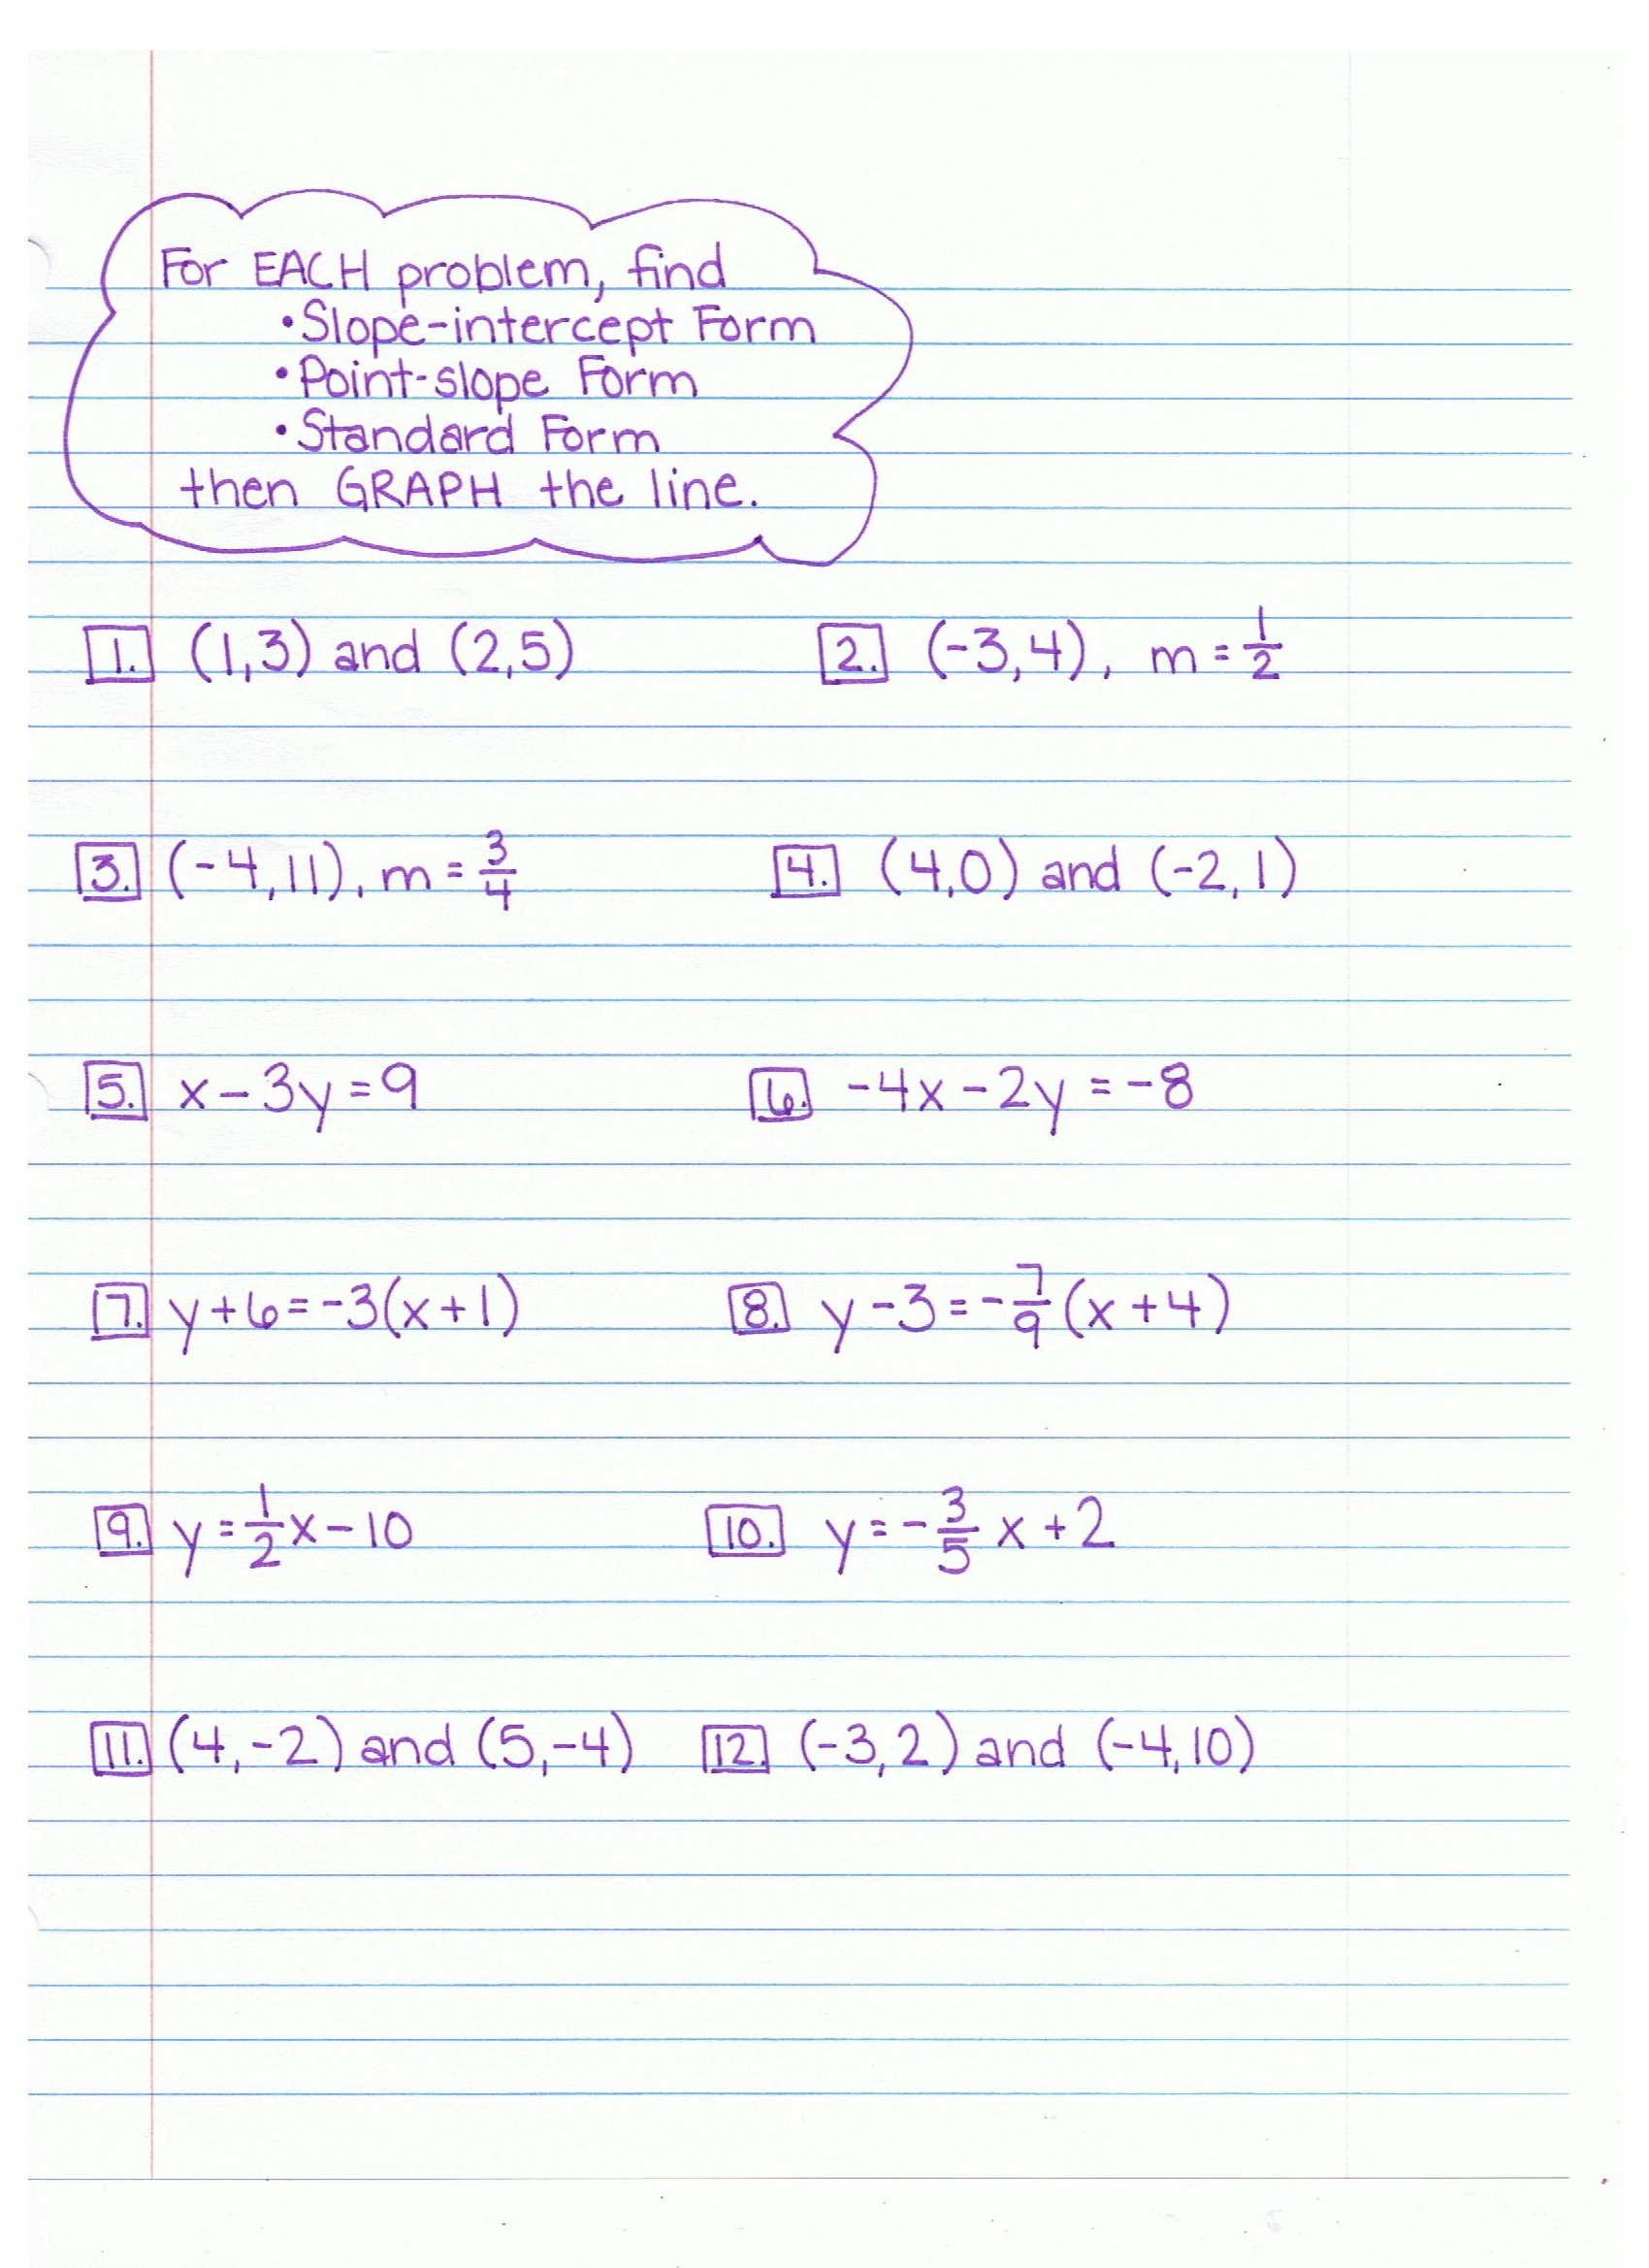 worksheet Two By Two A Friend For You Algebra Worksheet Key algebra 1 homework help and answers i need a paper written for me answers